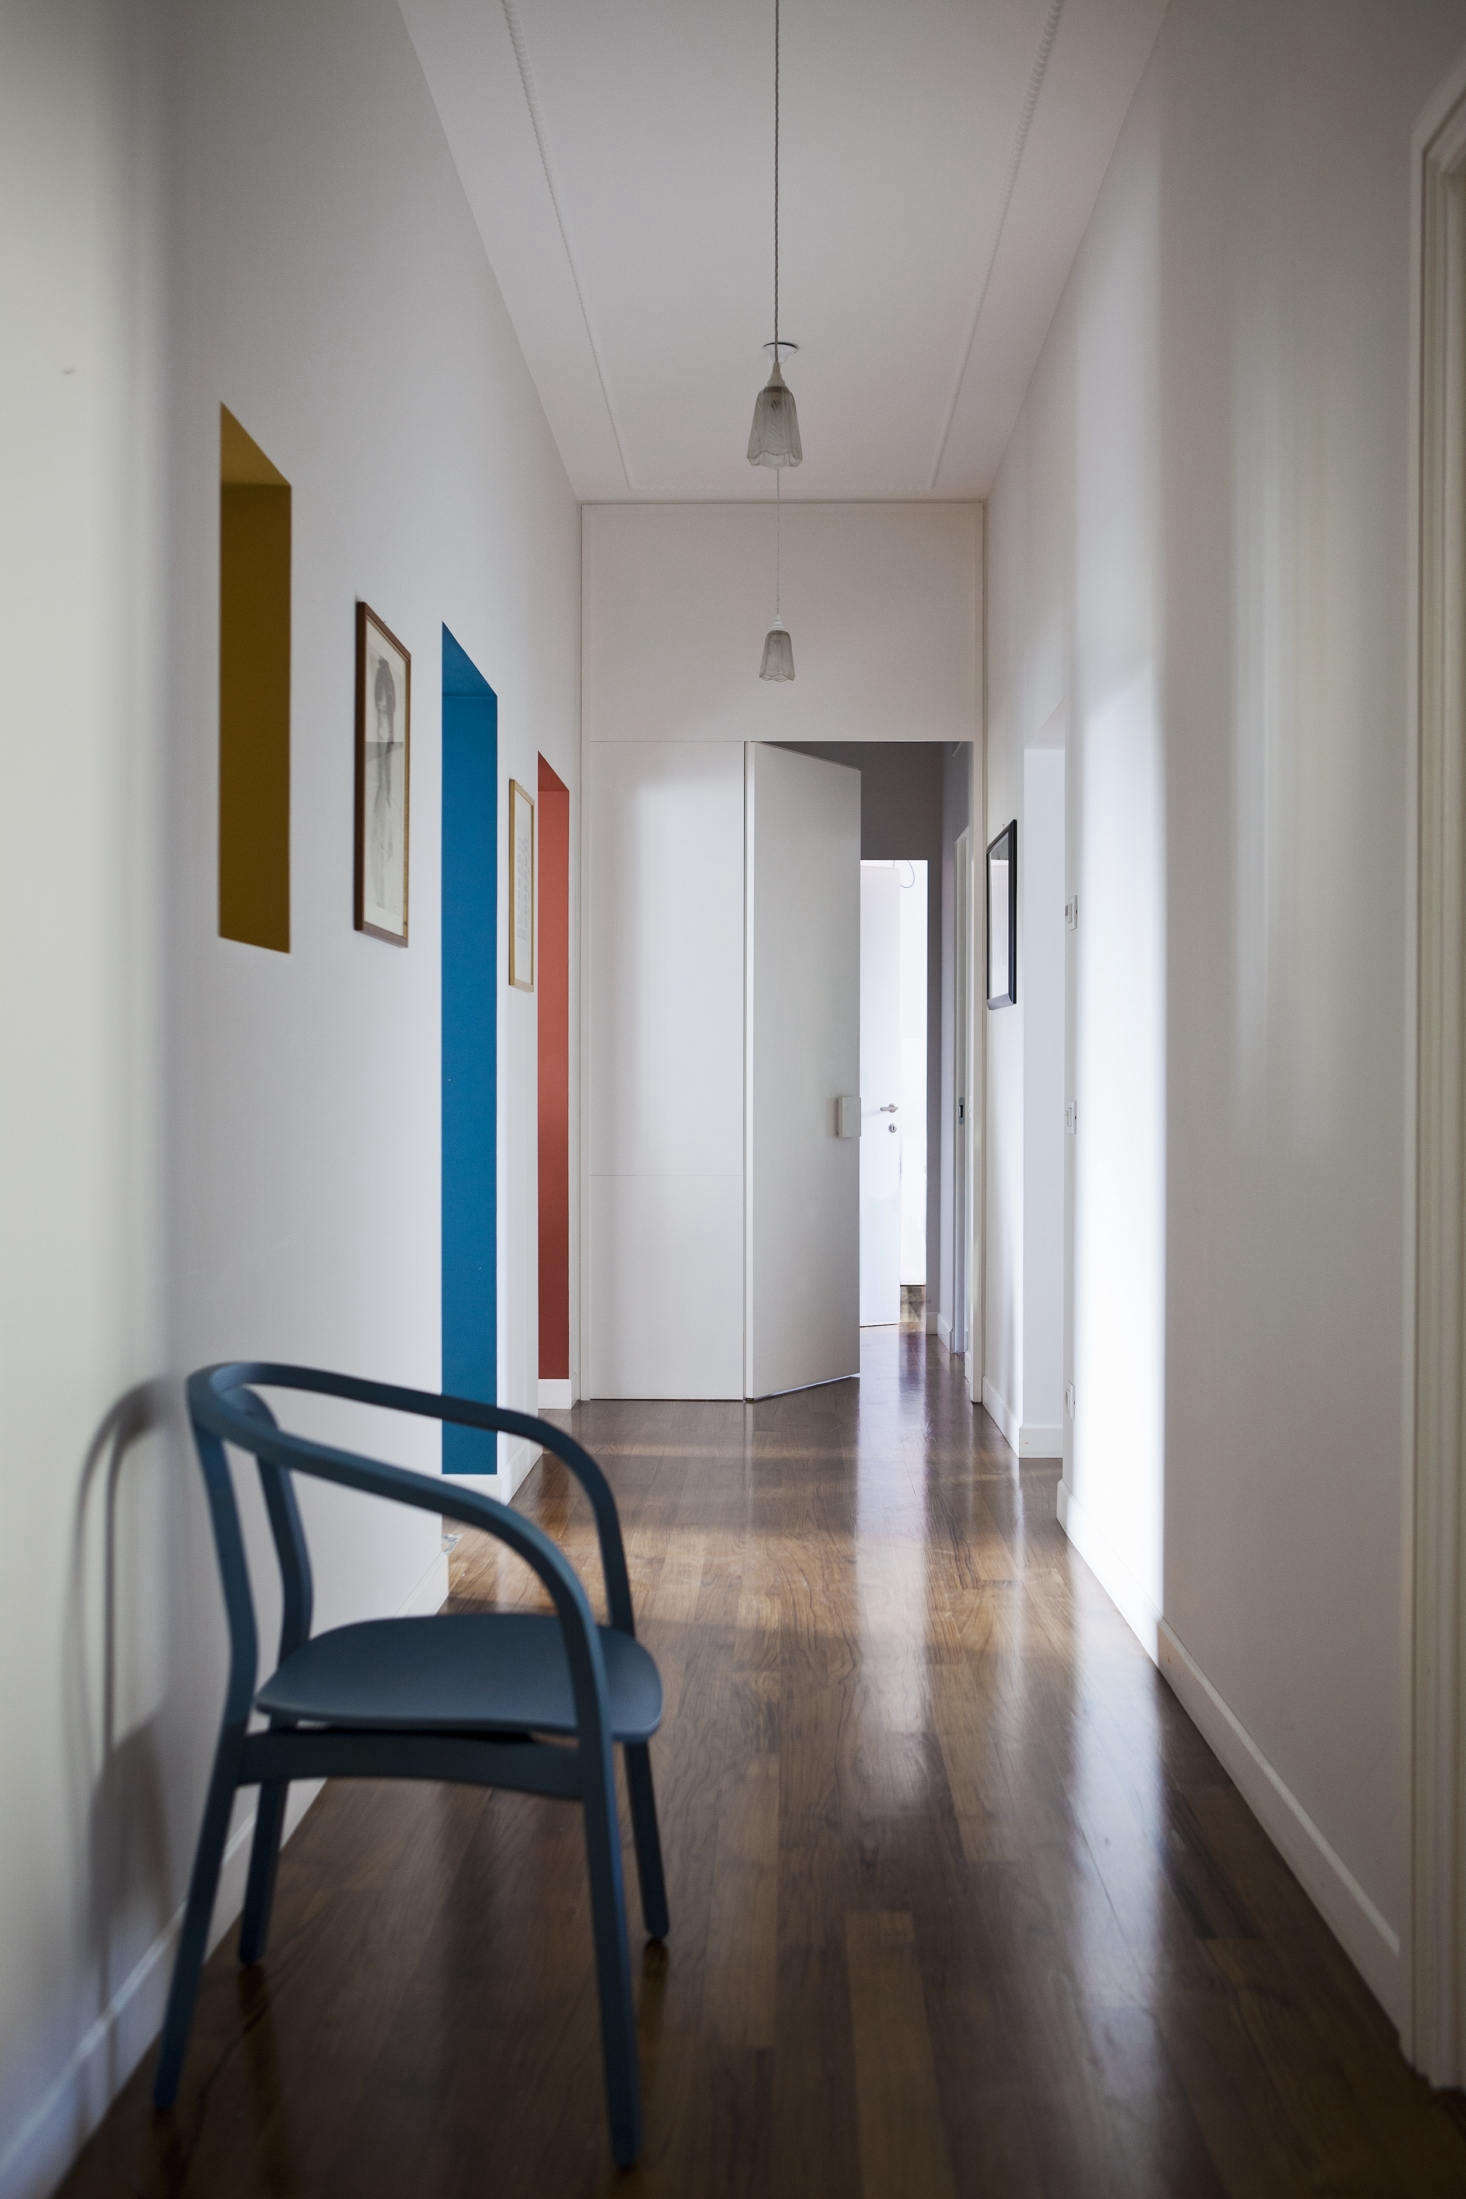 The architects used paint in an unusual way throughout, like painting the insides of doorways in Tuscan Red and Gauze Dark, both by Little Greene. Looking down the hall, the doorways almost look like canvases hung on the walls.